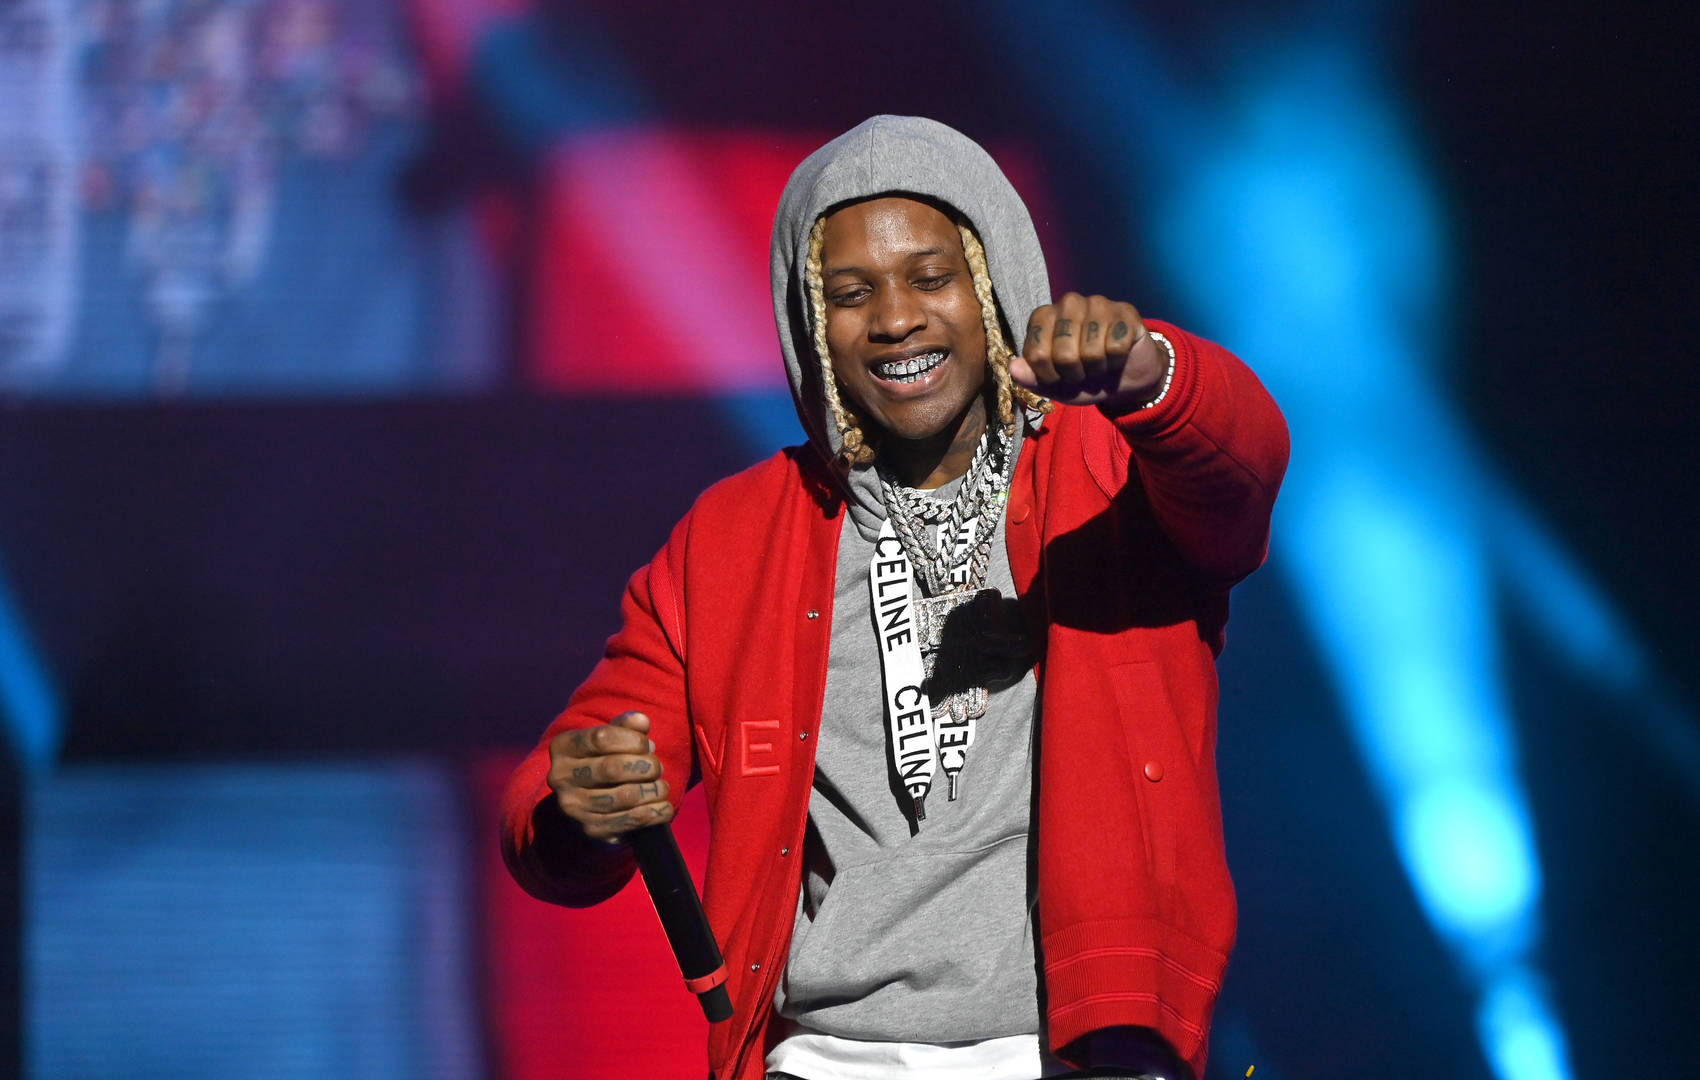 Rapper Lil Durk performs onstage during Hot 107.9 Birthday Bash 25 at Center Parc Credit Union Stadium at Georgia State University on July 17, 2021 in Atlanta, Georgia.